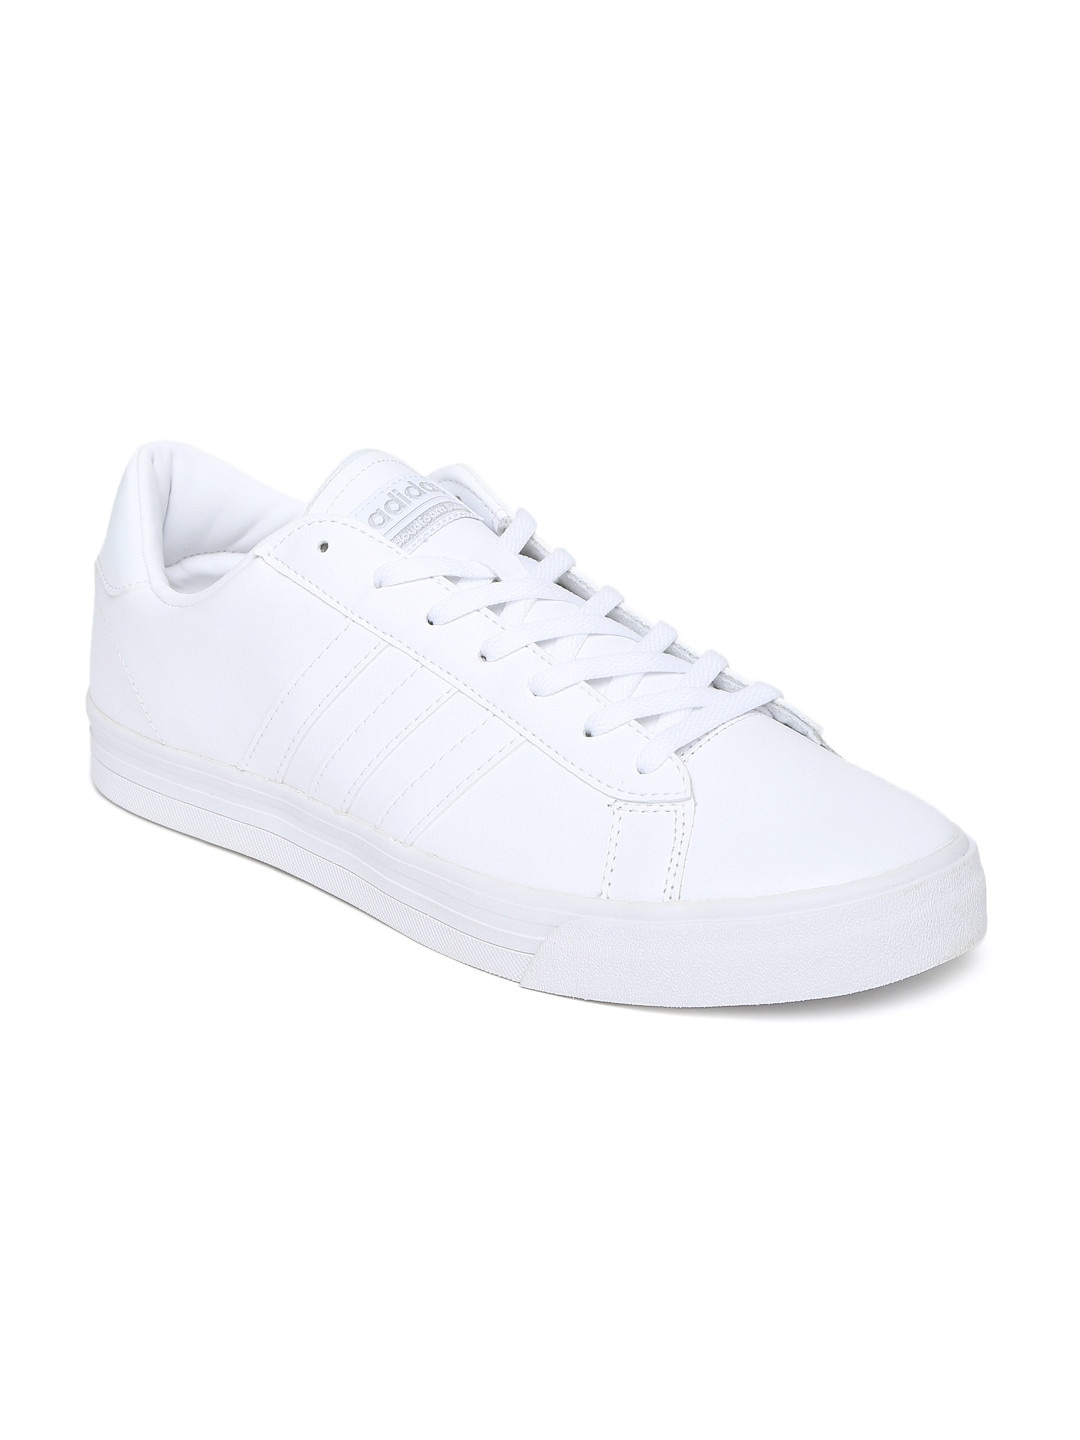 Adidas Neo Cloudfoam All White